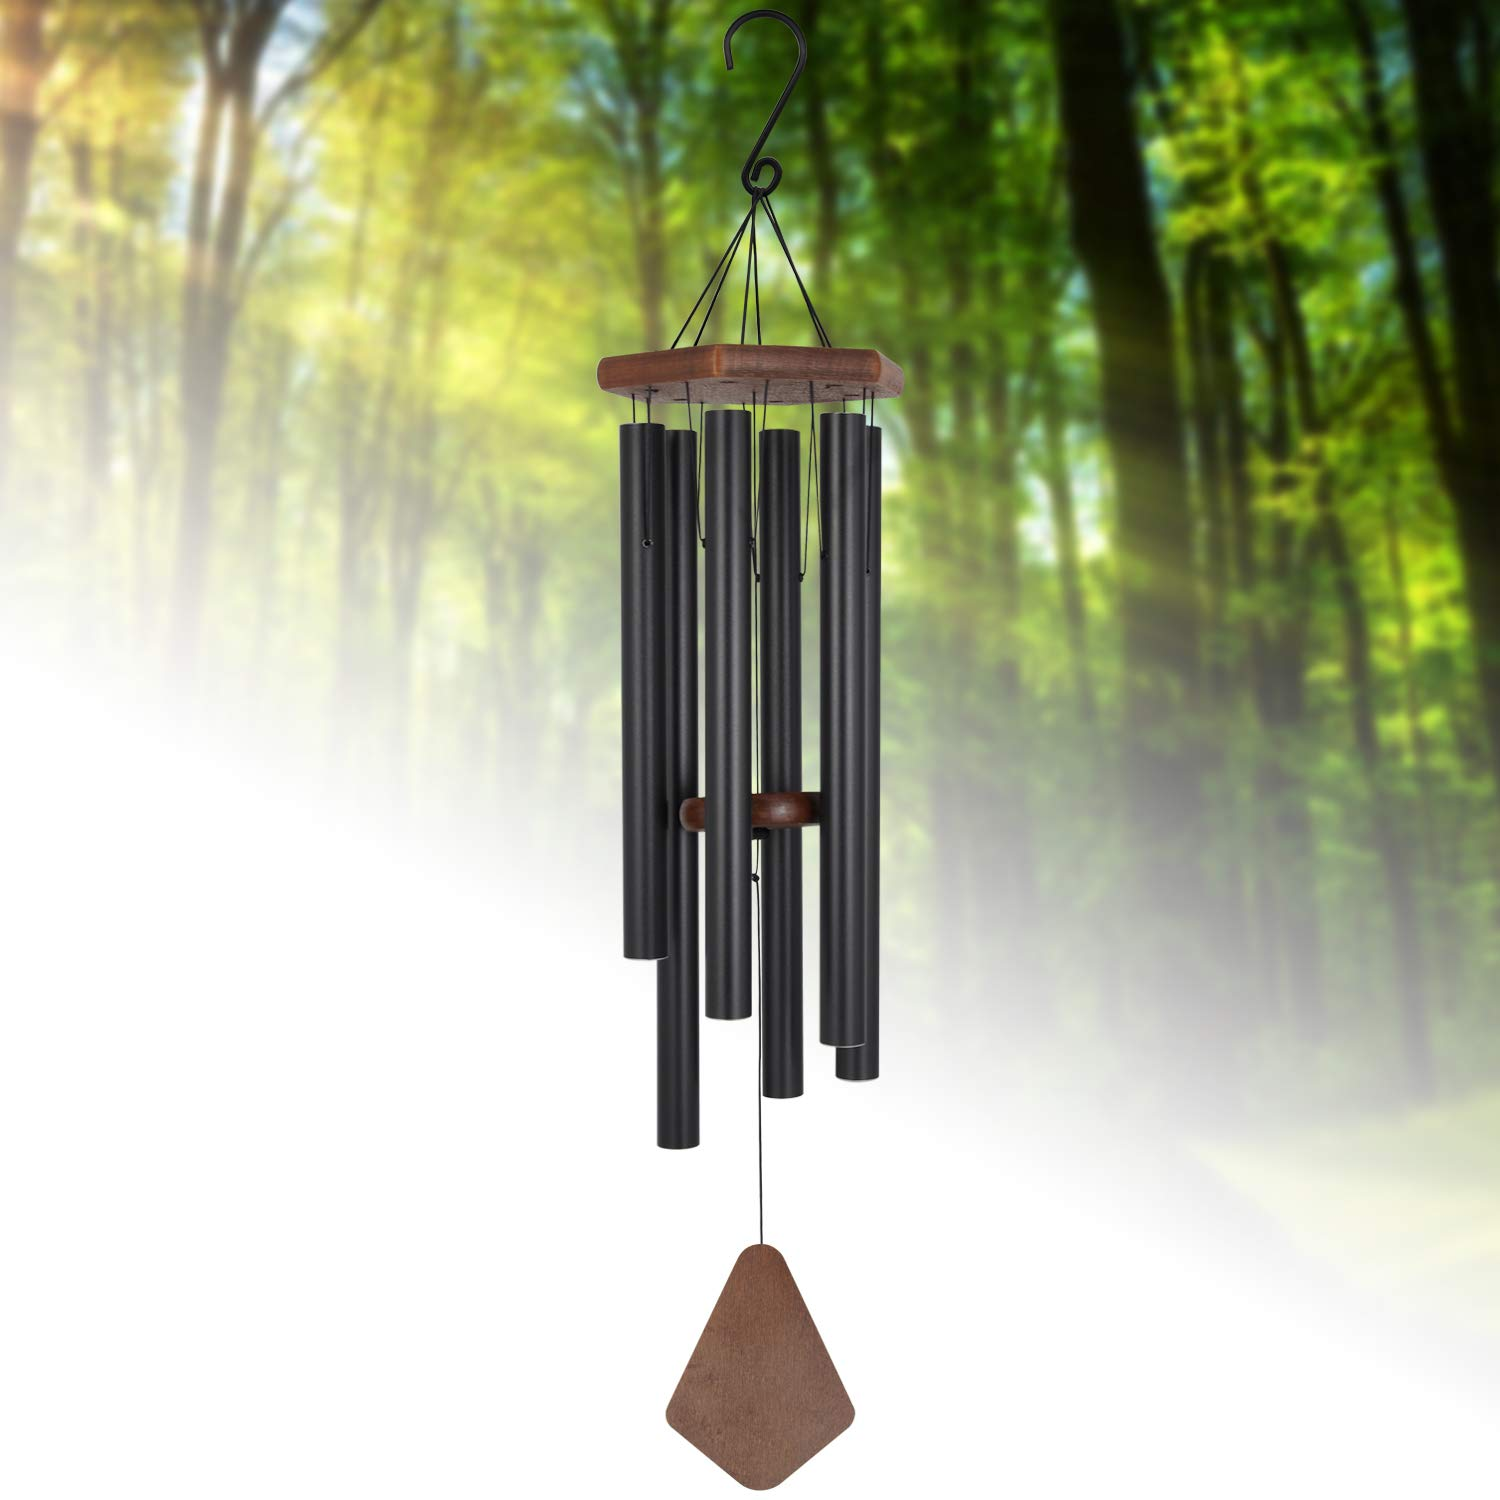 "Wind Chimes Outdoor Deep Tone,36""Large Wind Chimes Amazing Grace with 6 Heavy Tuned Tubes,Memorial Wind Chimes for Sympathy Gifts or Home Yard Housewarming Hanging Decor,Matte Black"